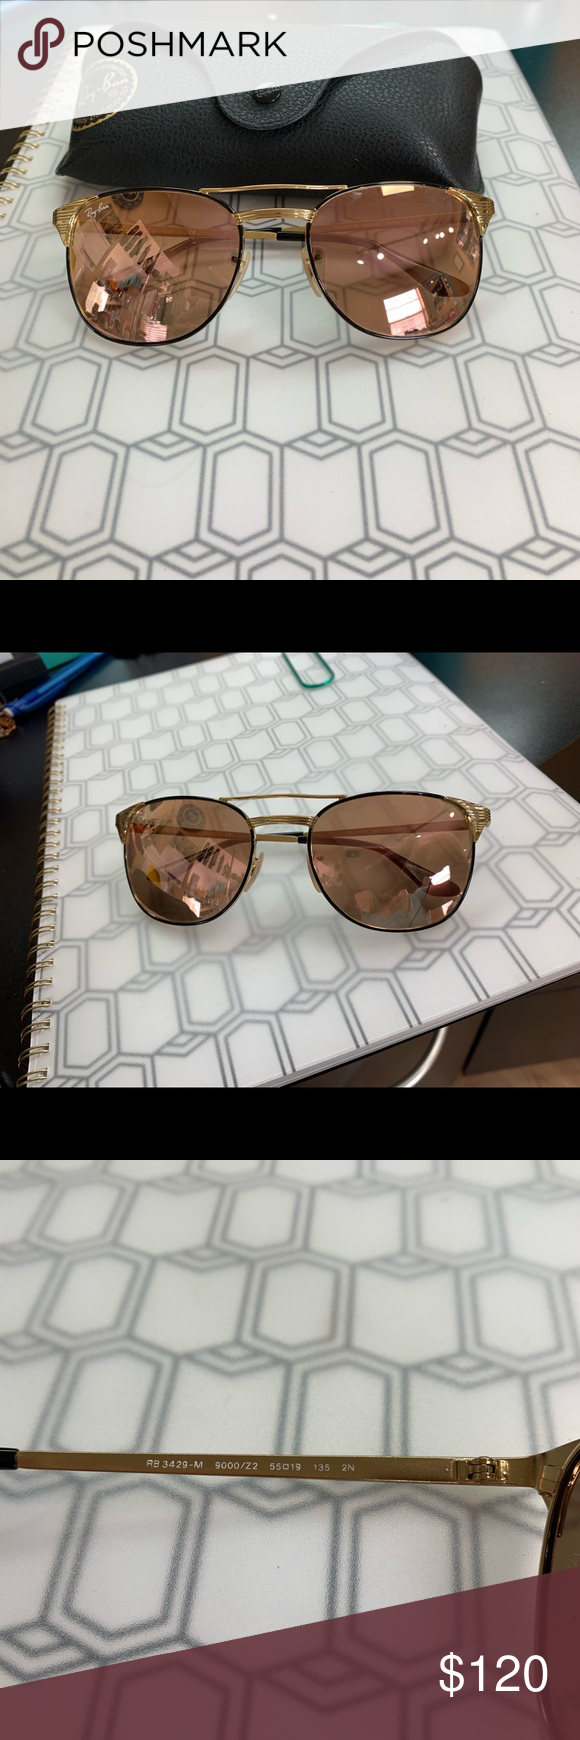 Ray Ban RB3429 M Sonnenbrille in Gold Second Hand